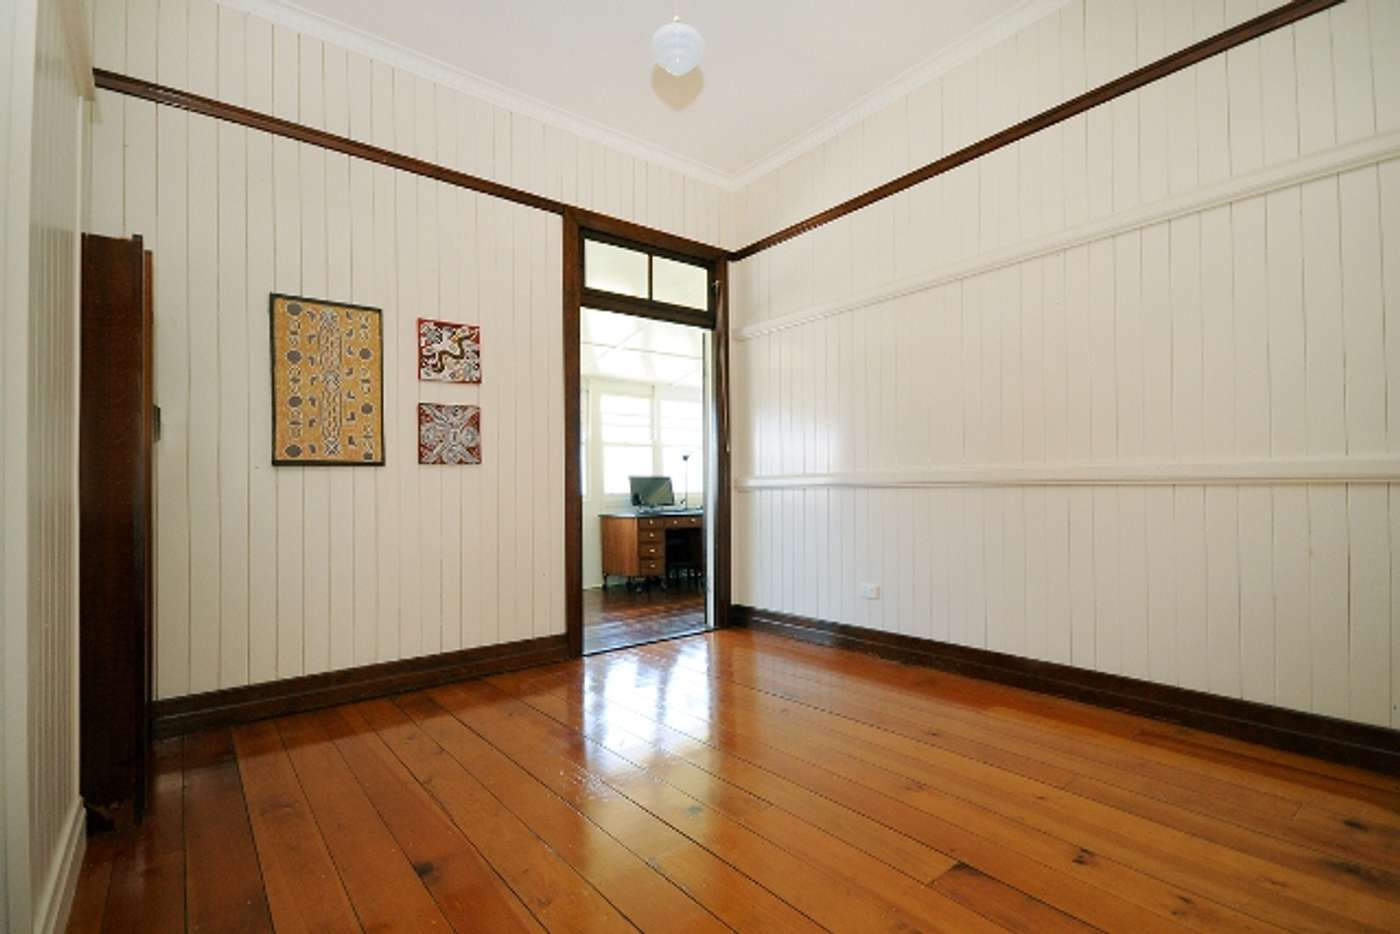 Sixth view of Homely house listing, 20 Partridge Street, East Toowoomba QLD 4350